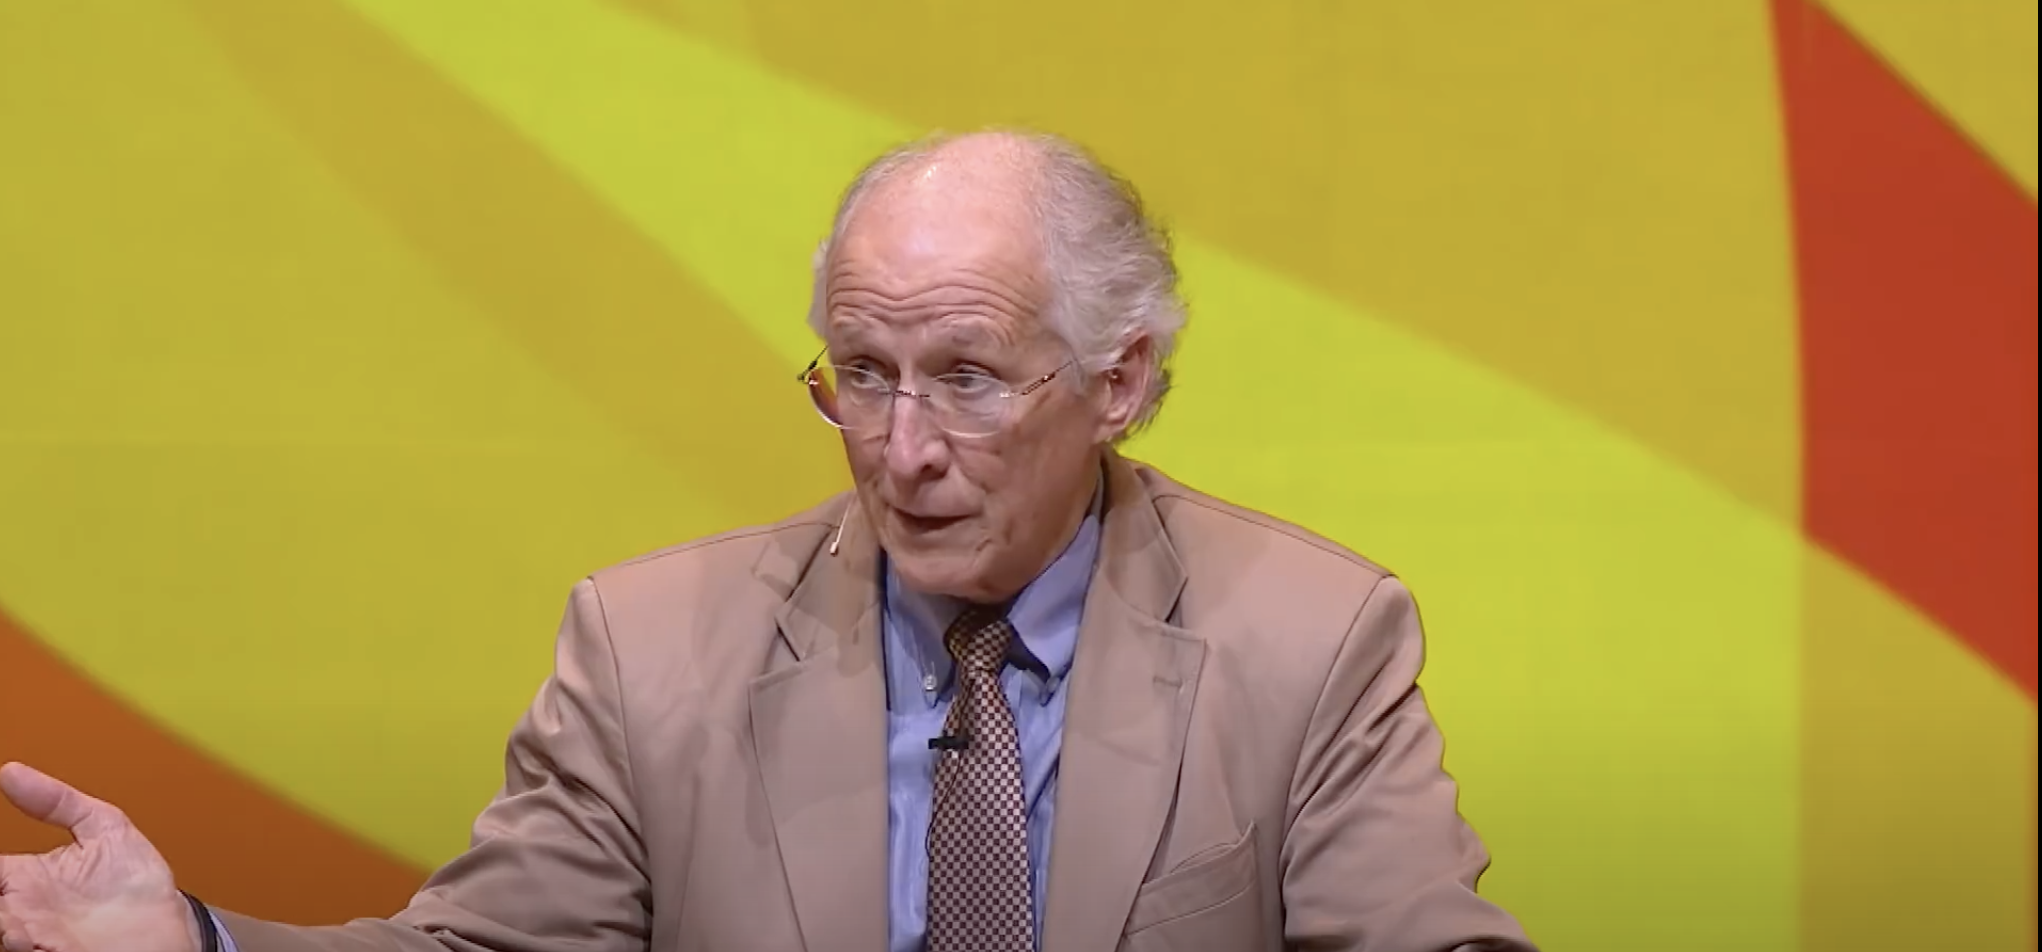 John Piper in 2018 (YouTube screenshot)